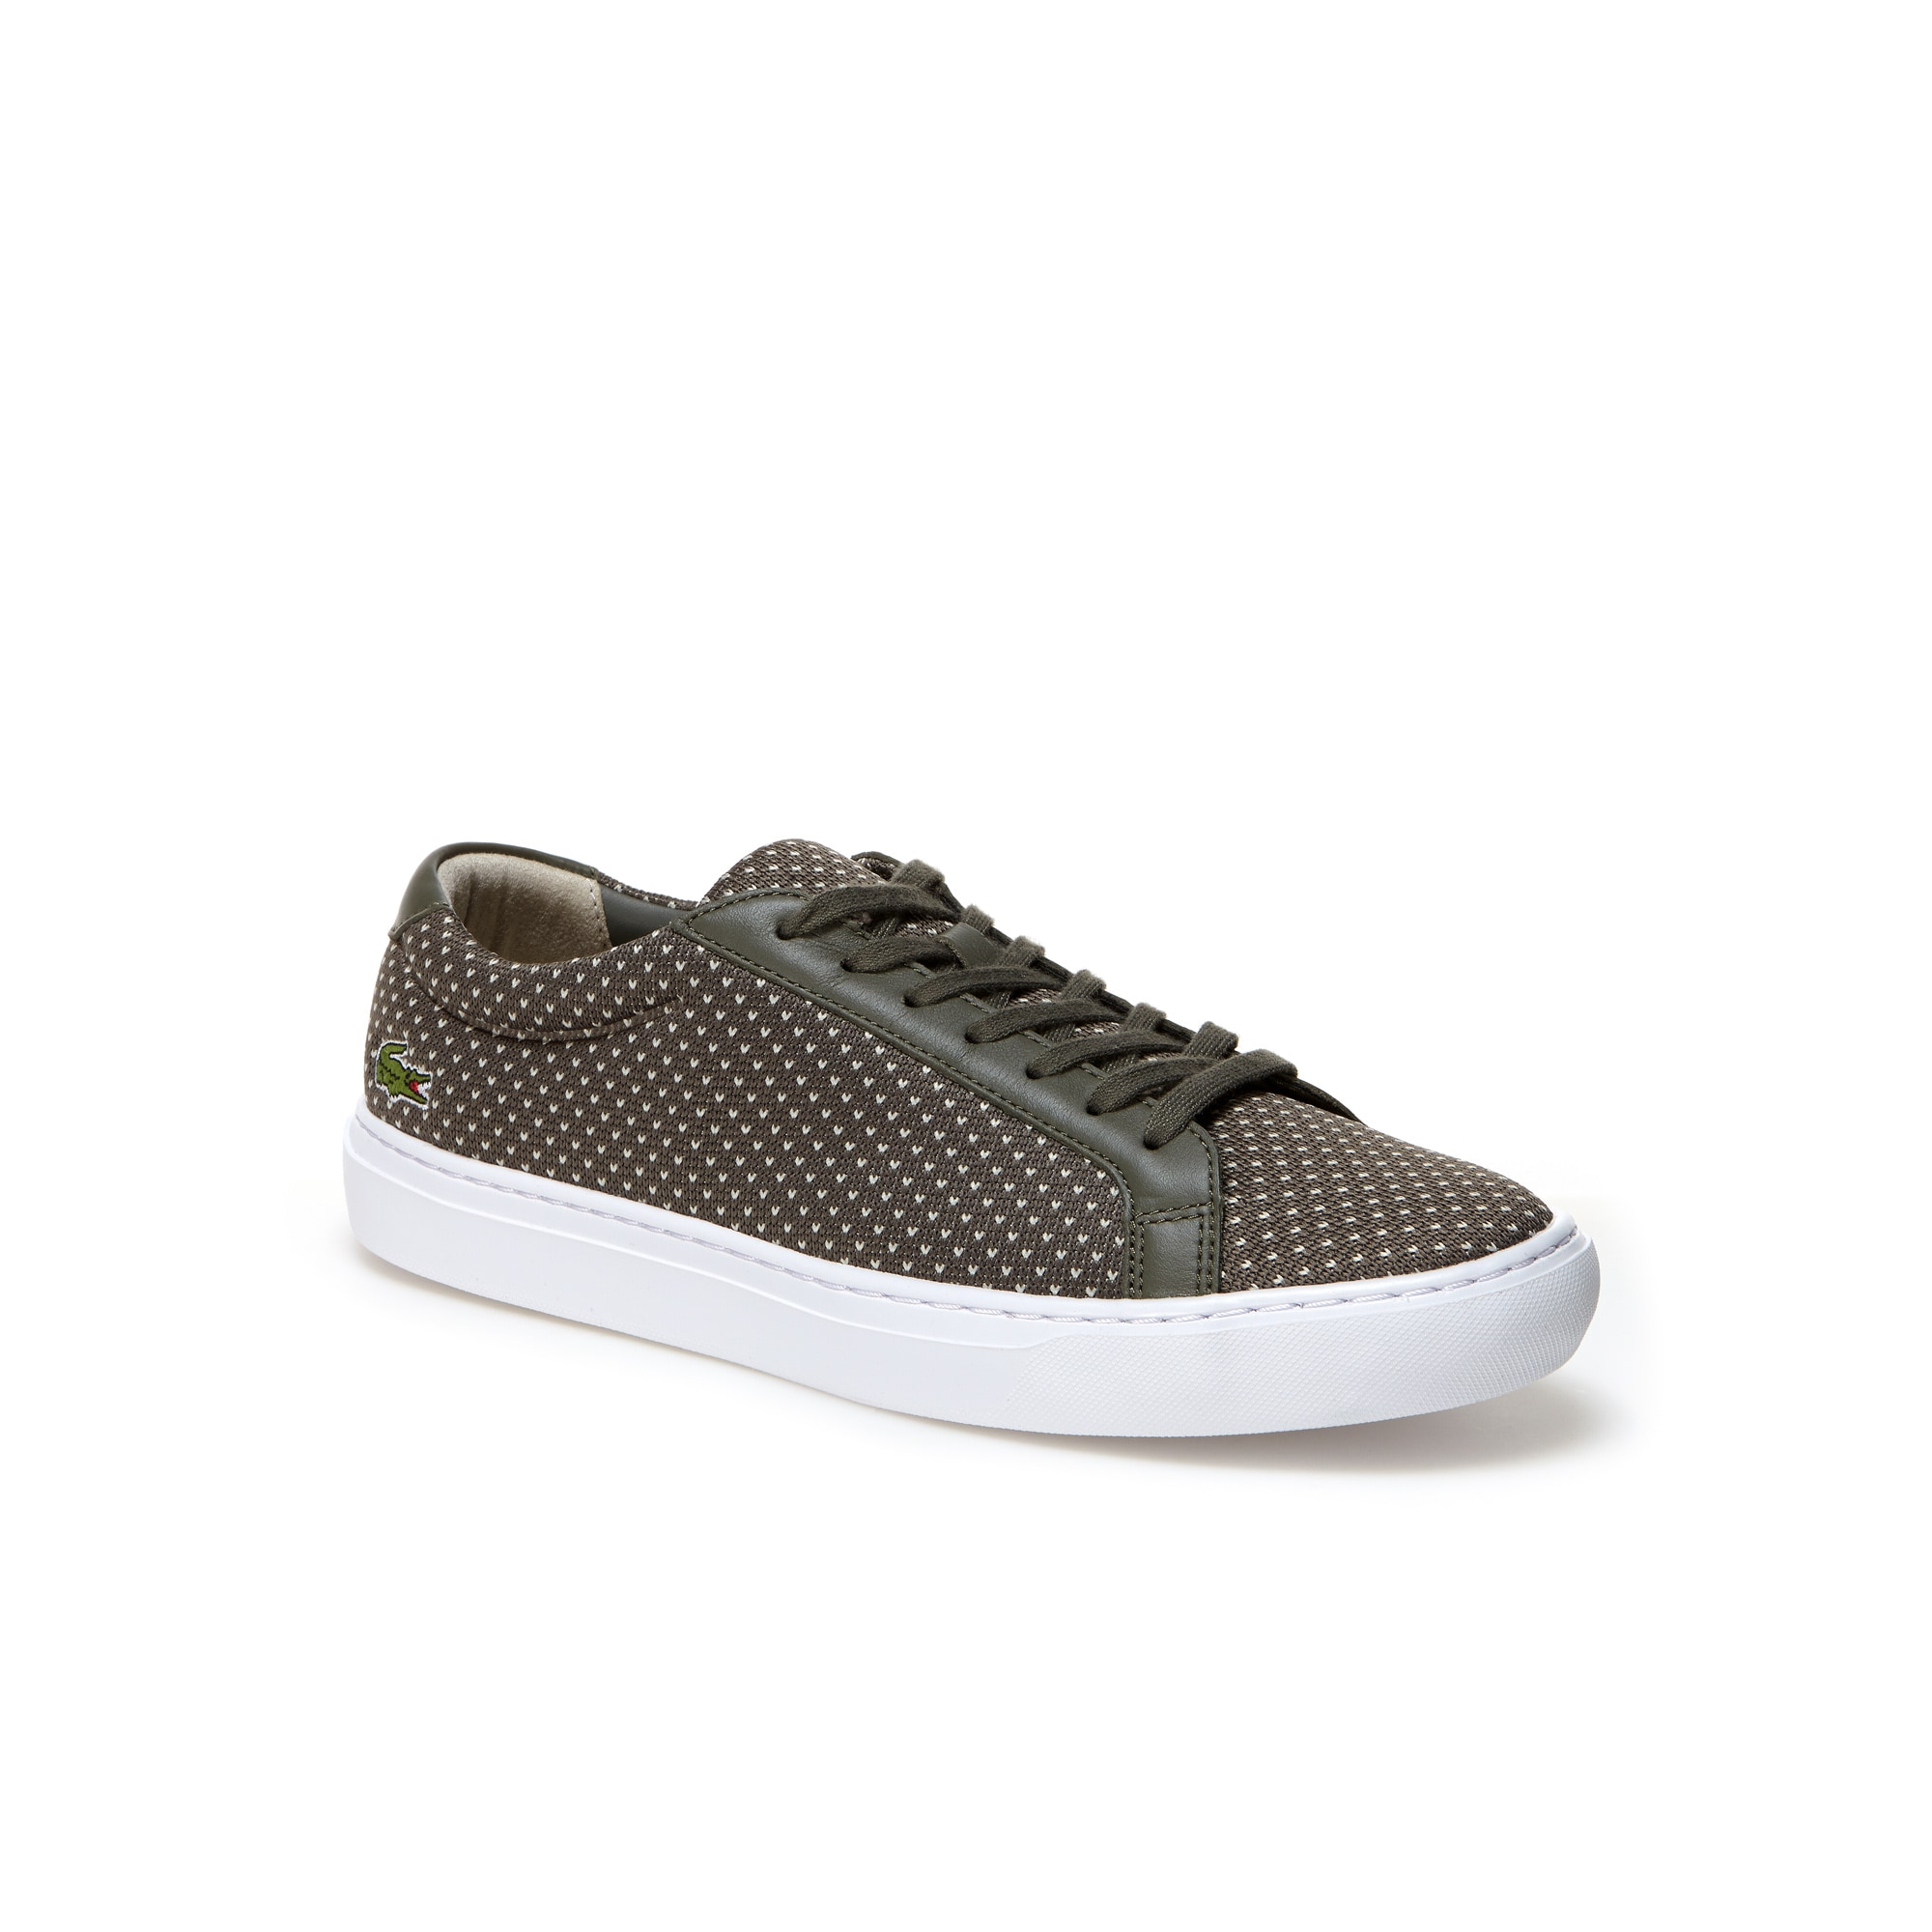 Men's L.12.12 Lightweight Textile Trainers